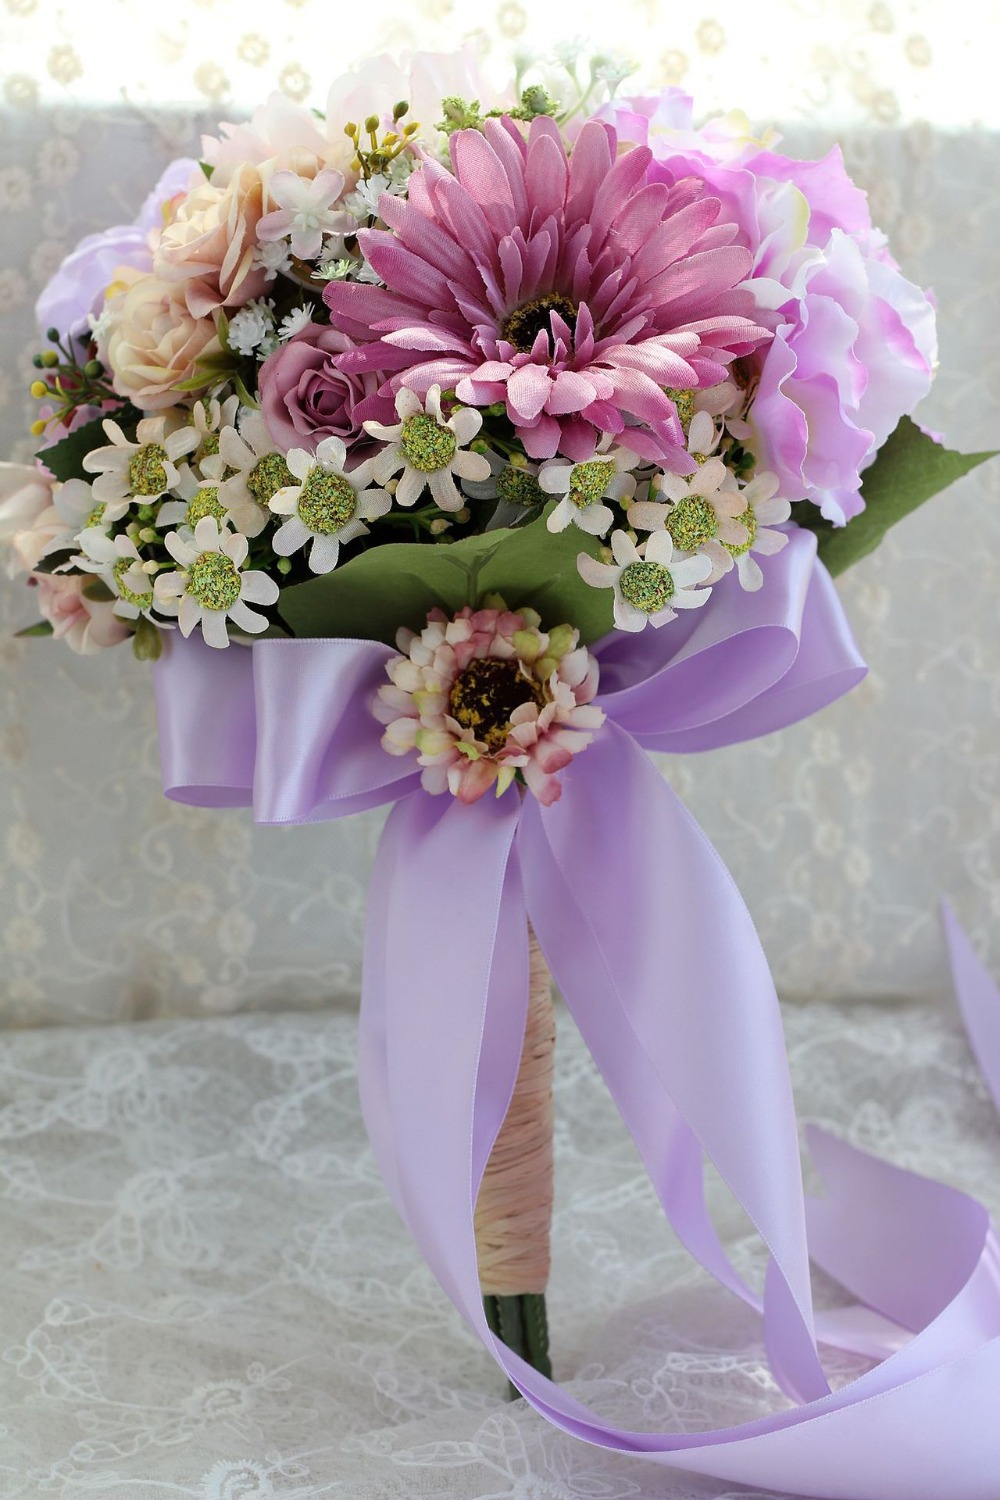 silk flowers for wedding bouquets cheap photo - 1